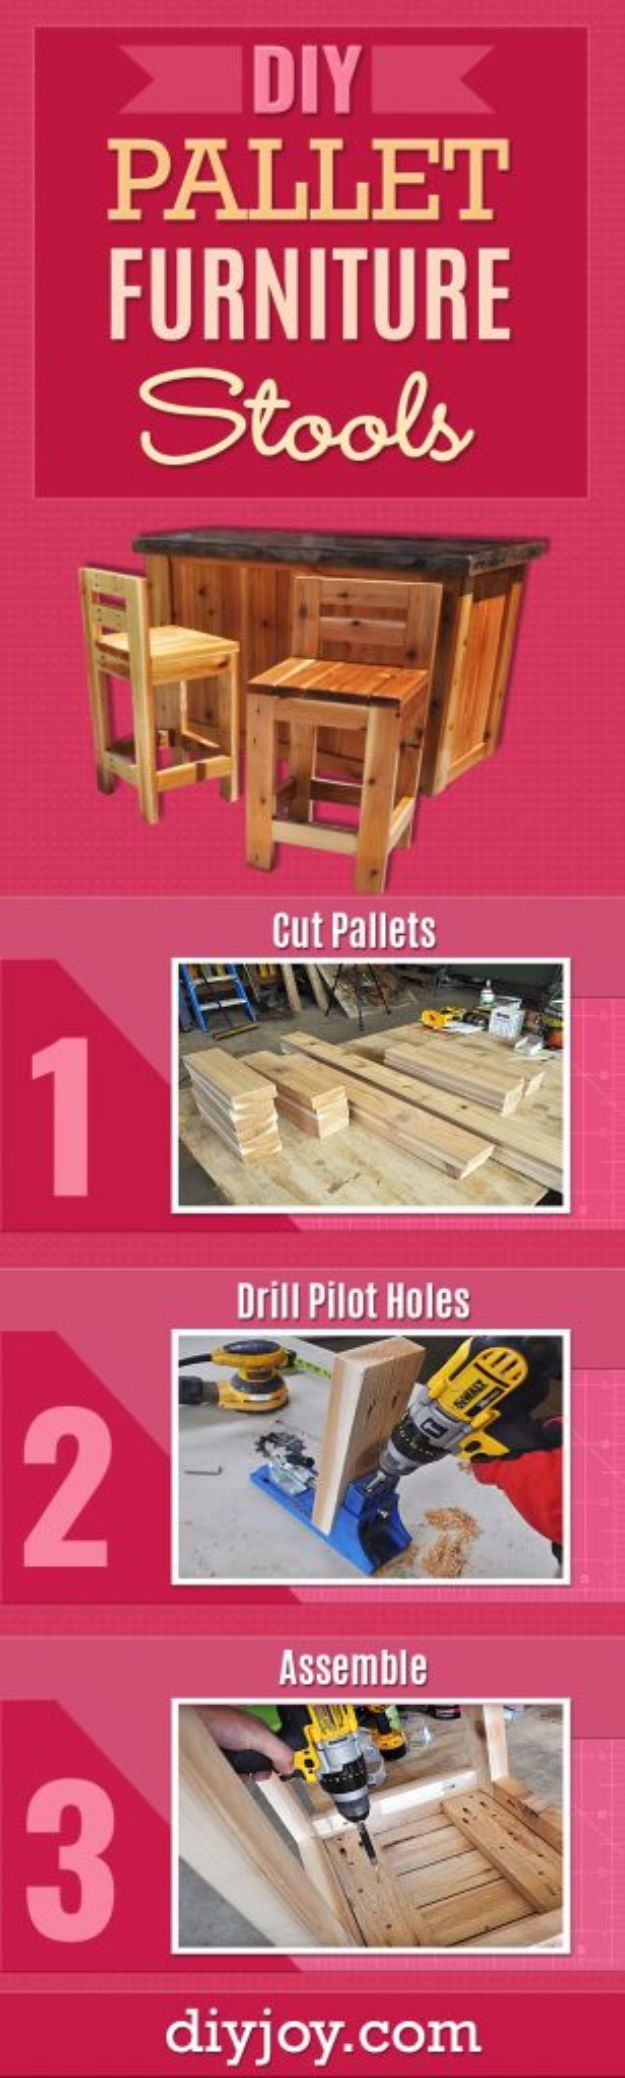 DIY Barstools - DIY Wooden Stools - Easy and Cheap Ideas for Seating and Creative Home Decor - Do It Yourself Bar Stools for Modern, Rustic, Farmhouse, Shabby Chic, Industrial and Simple Classic Decor - Do It Yourself Dining Room Seating Complete With Step by Step Tutorials http://diyjoy.com/diy-barstools